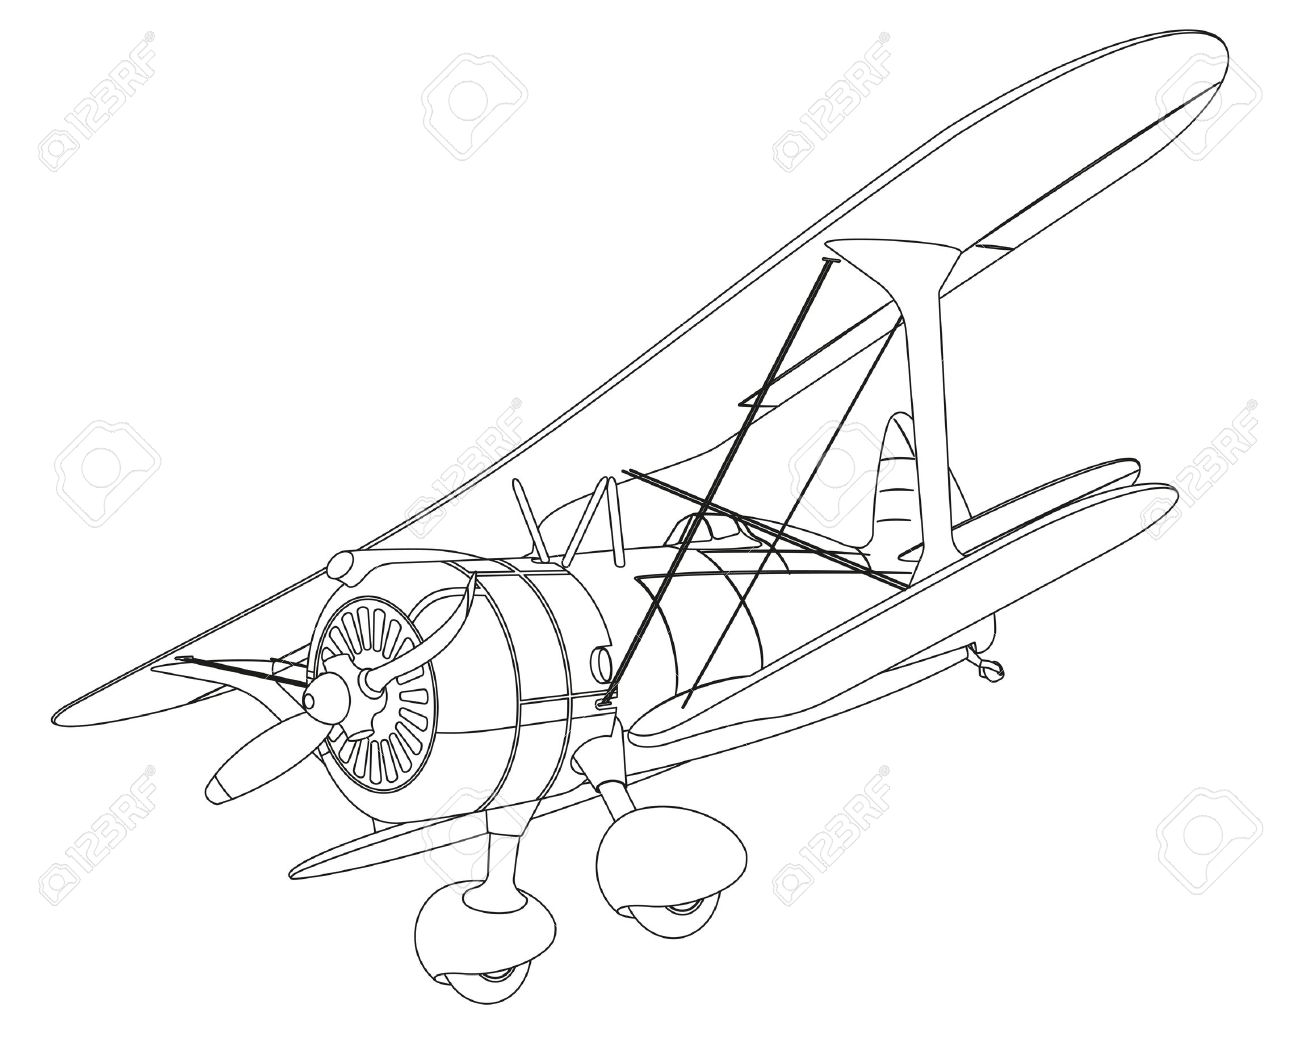 old airplane drawing at getdrawings com